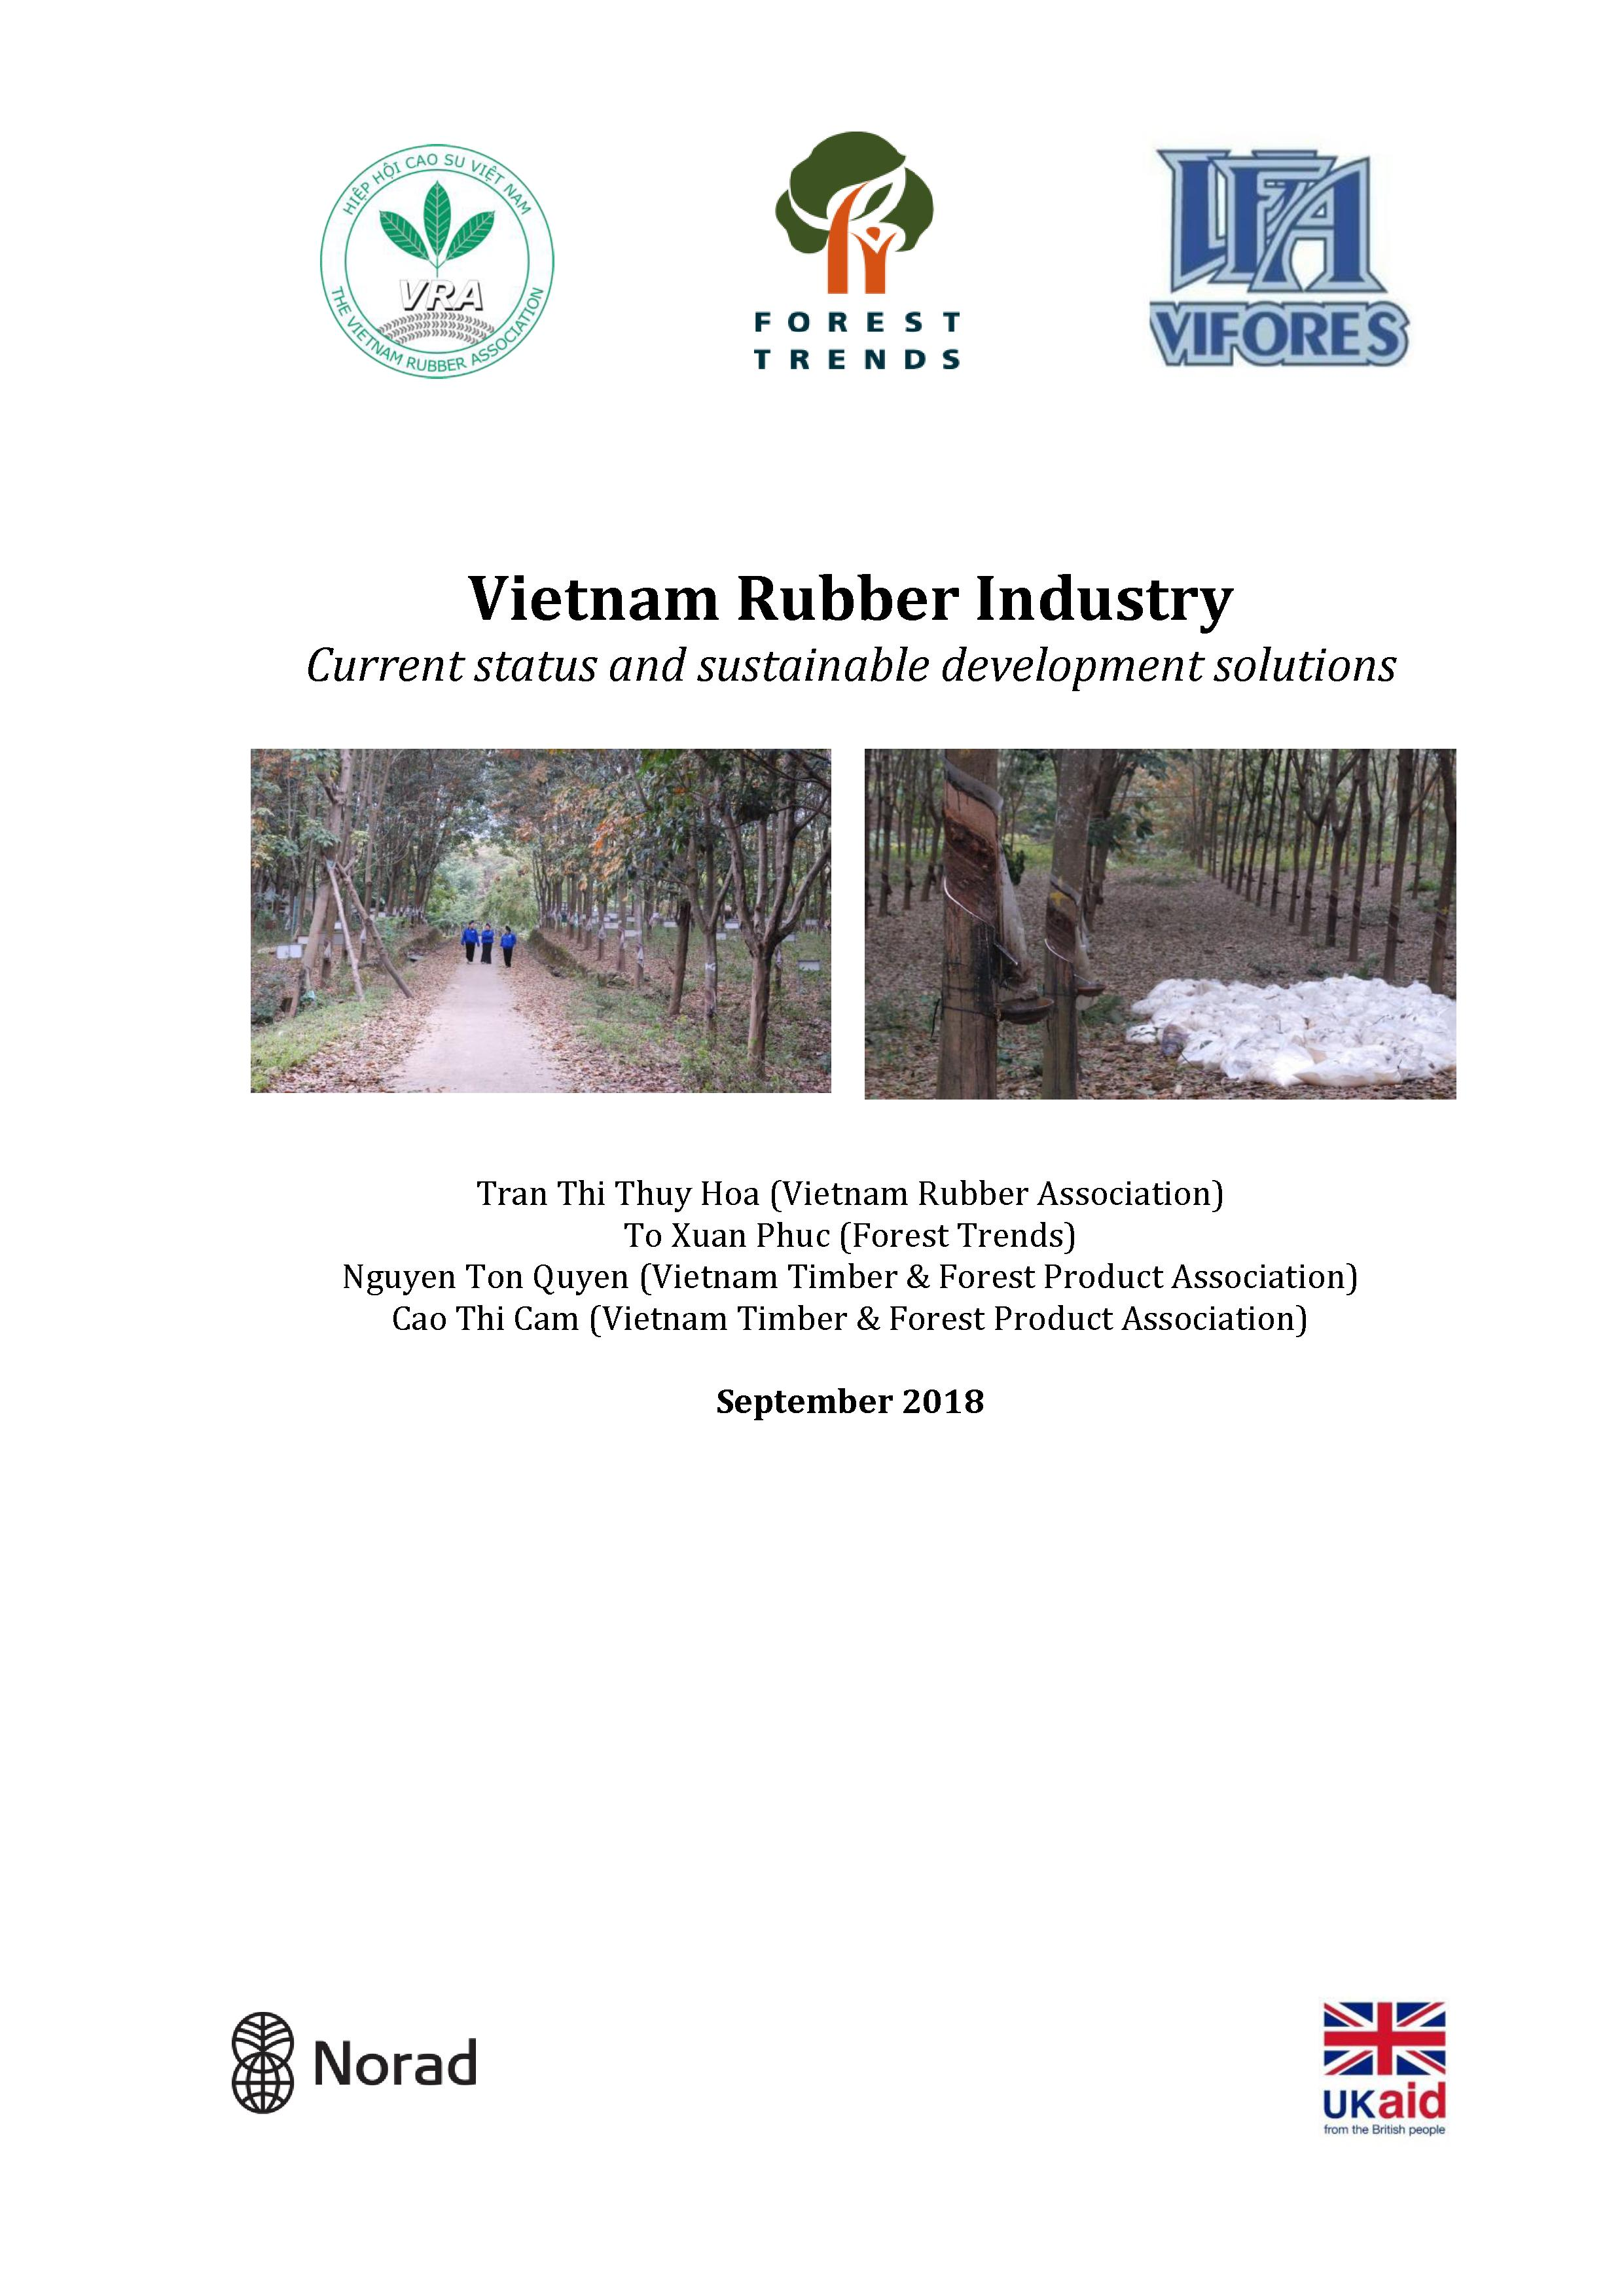 Vietnam Rubber Industry: Current status and sustainable development solutions